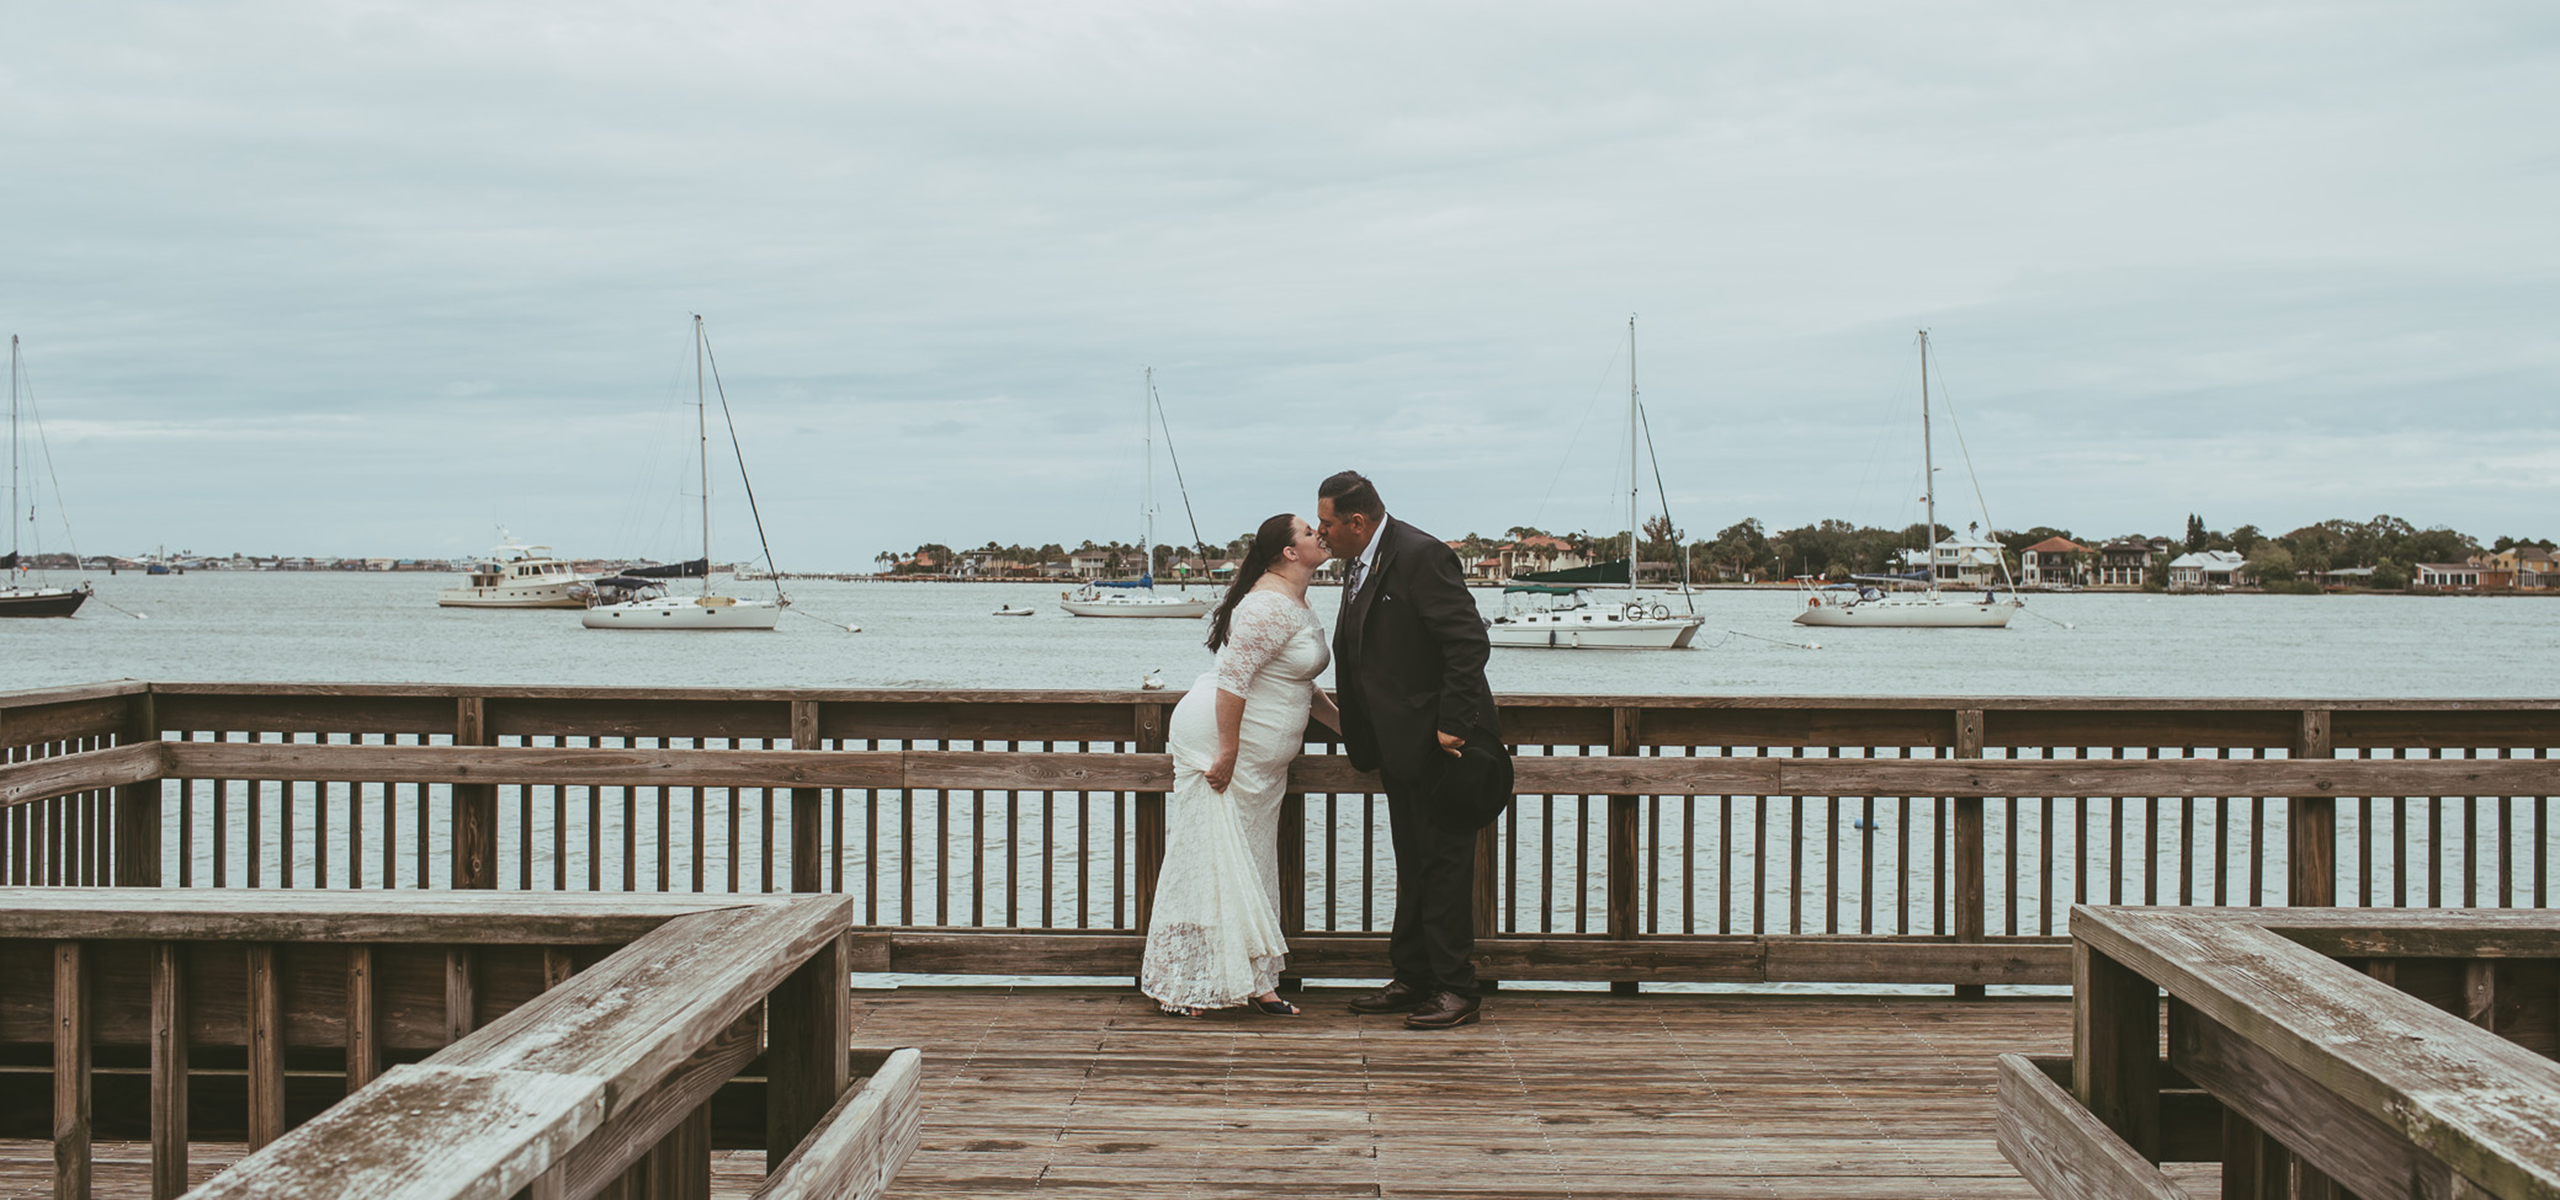 Cape Charles Virginia Wedding Photography + Elopement Photography